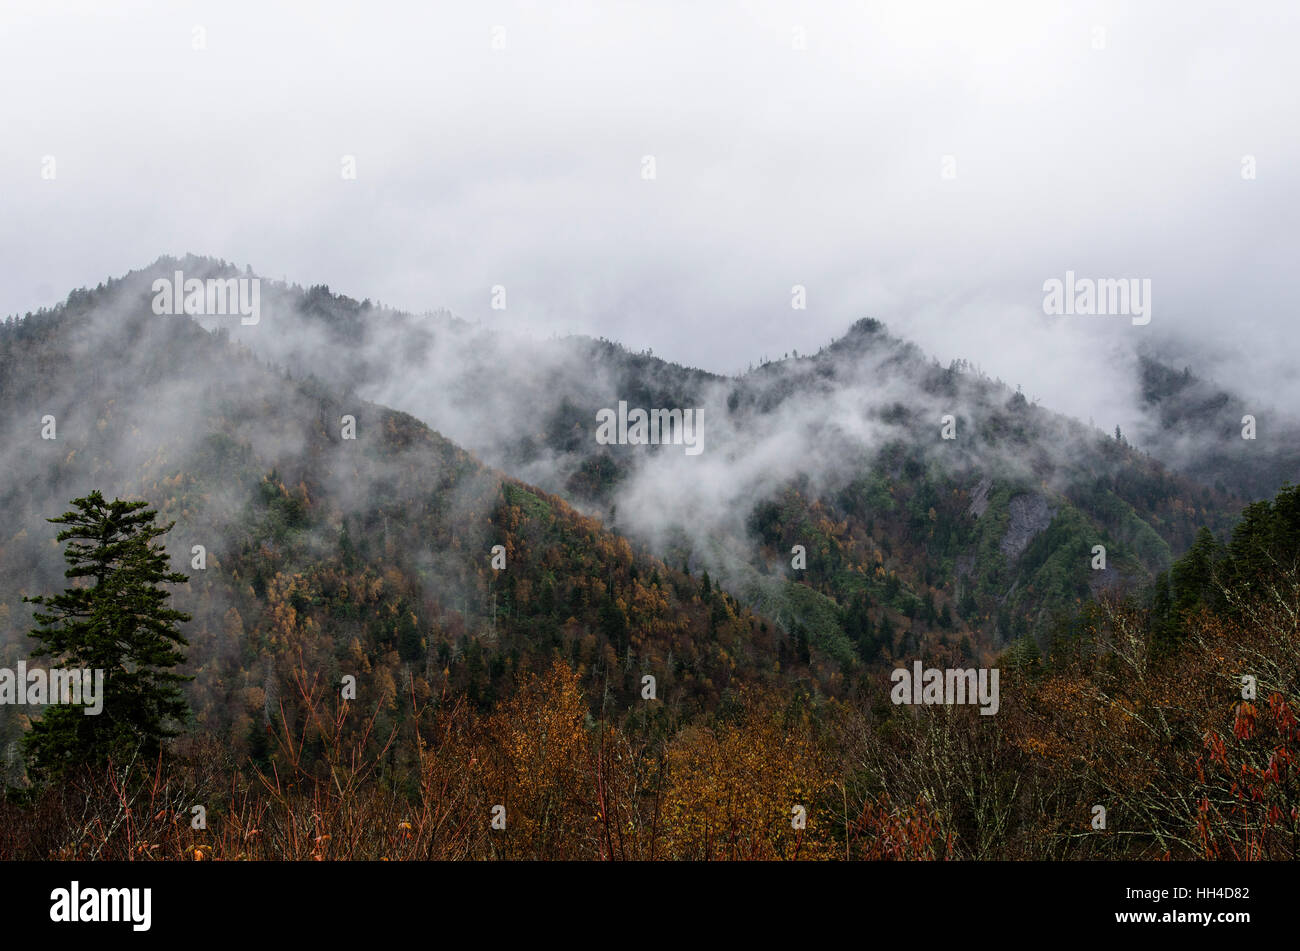 Cloudy Chimney Tops, Great Smoky Mountains National Park, Tennessee - Stock Image